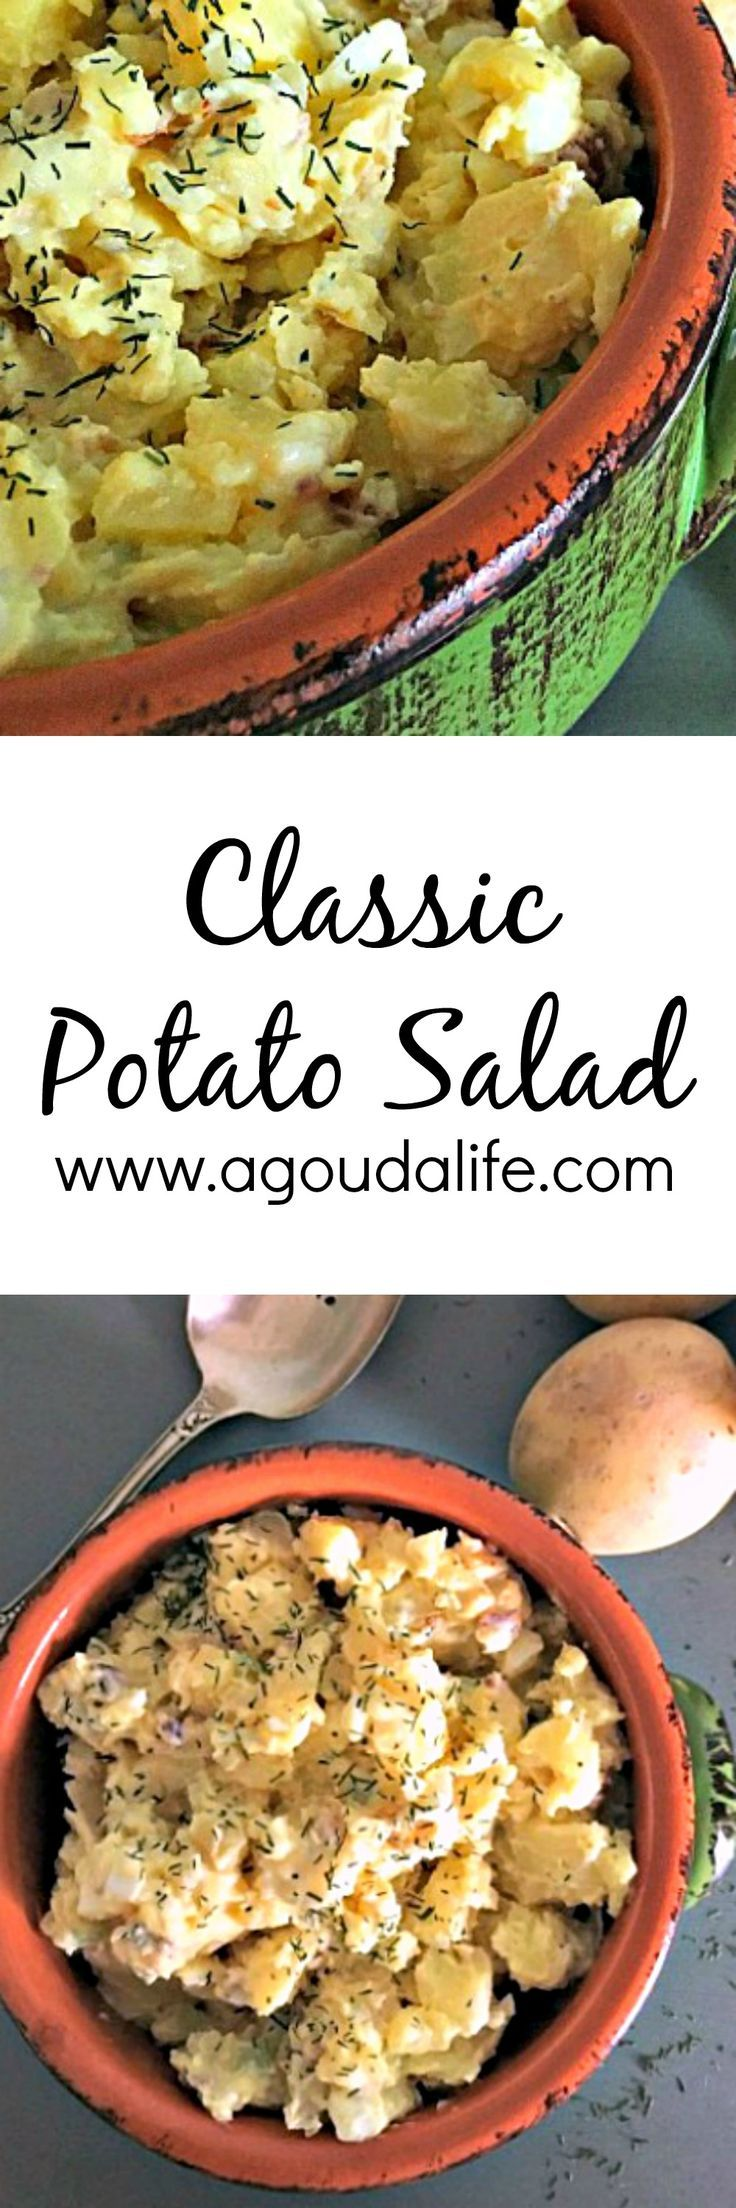 Classic Potato Salad ~ potatoes, hard boiled eggs, mayonnaise, fresh dill ~ just like mom or grandma used to make!